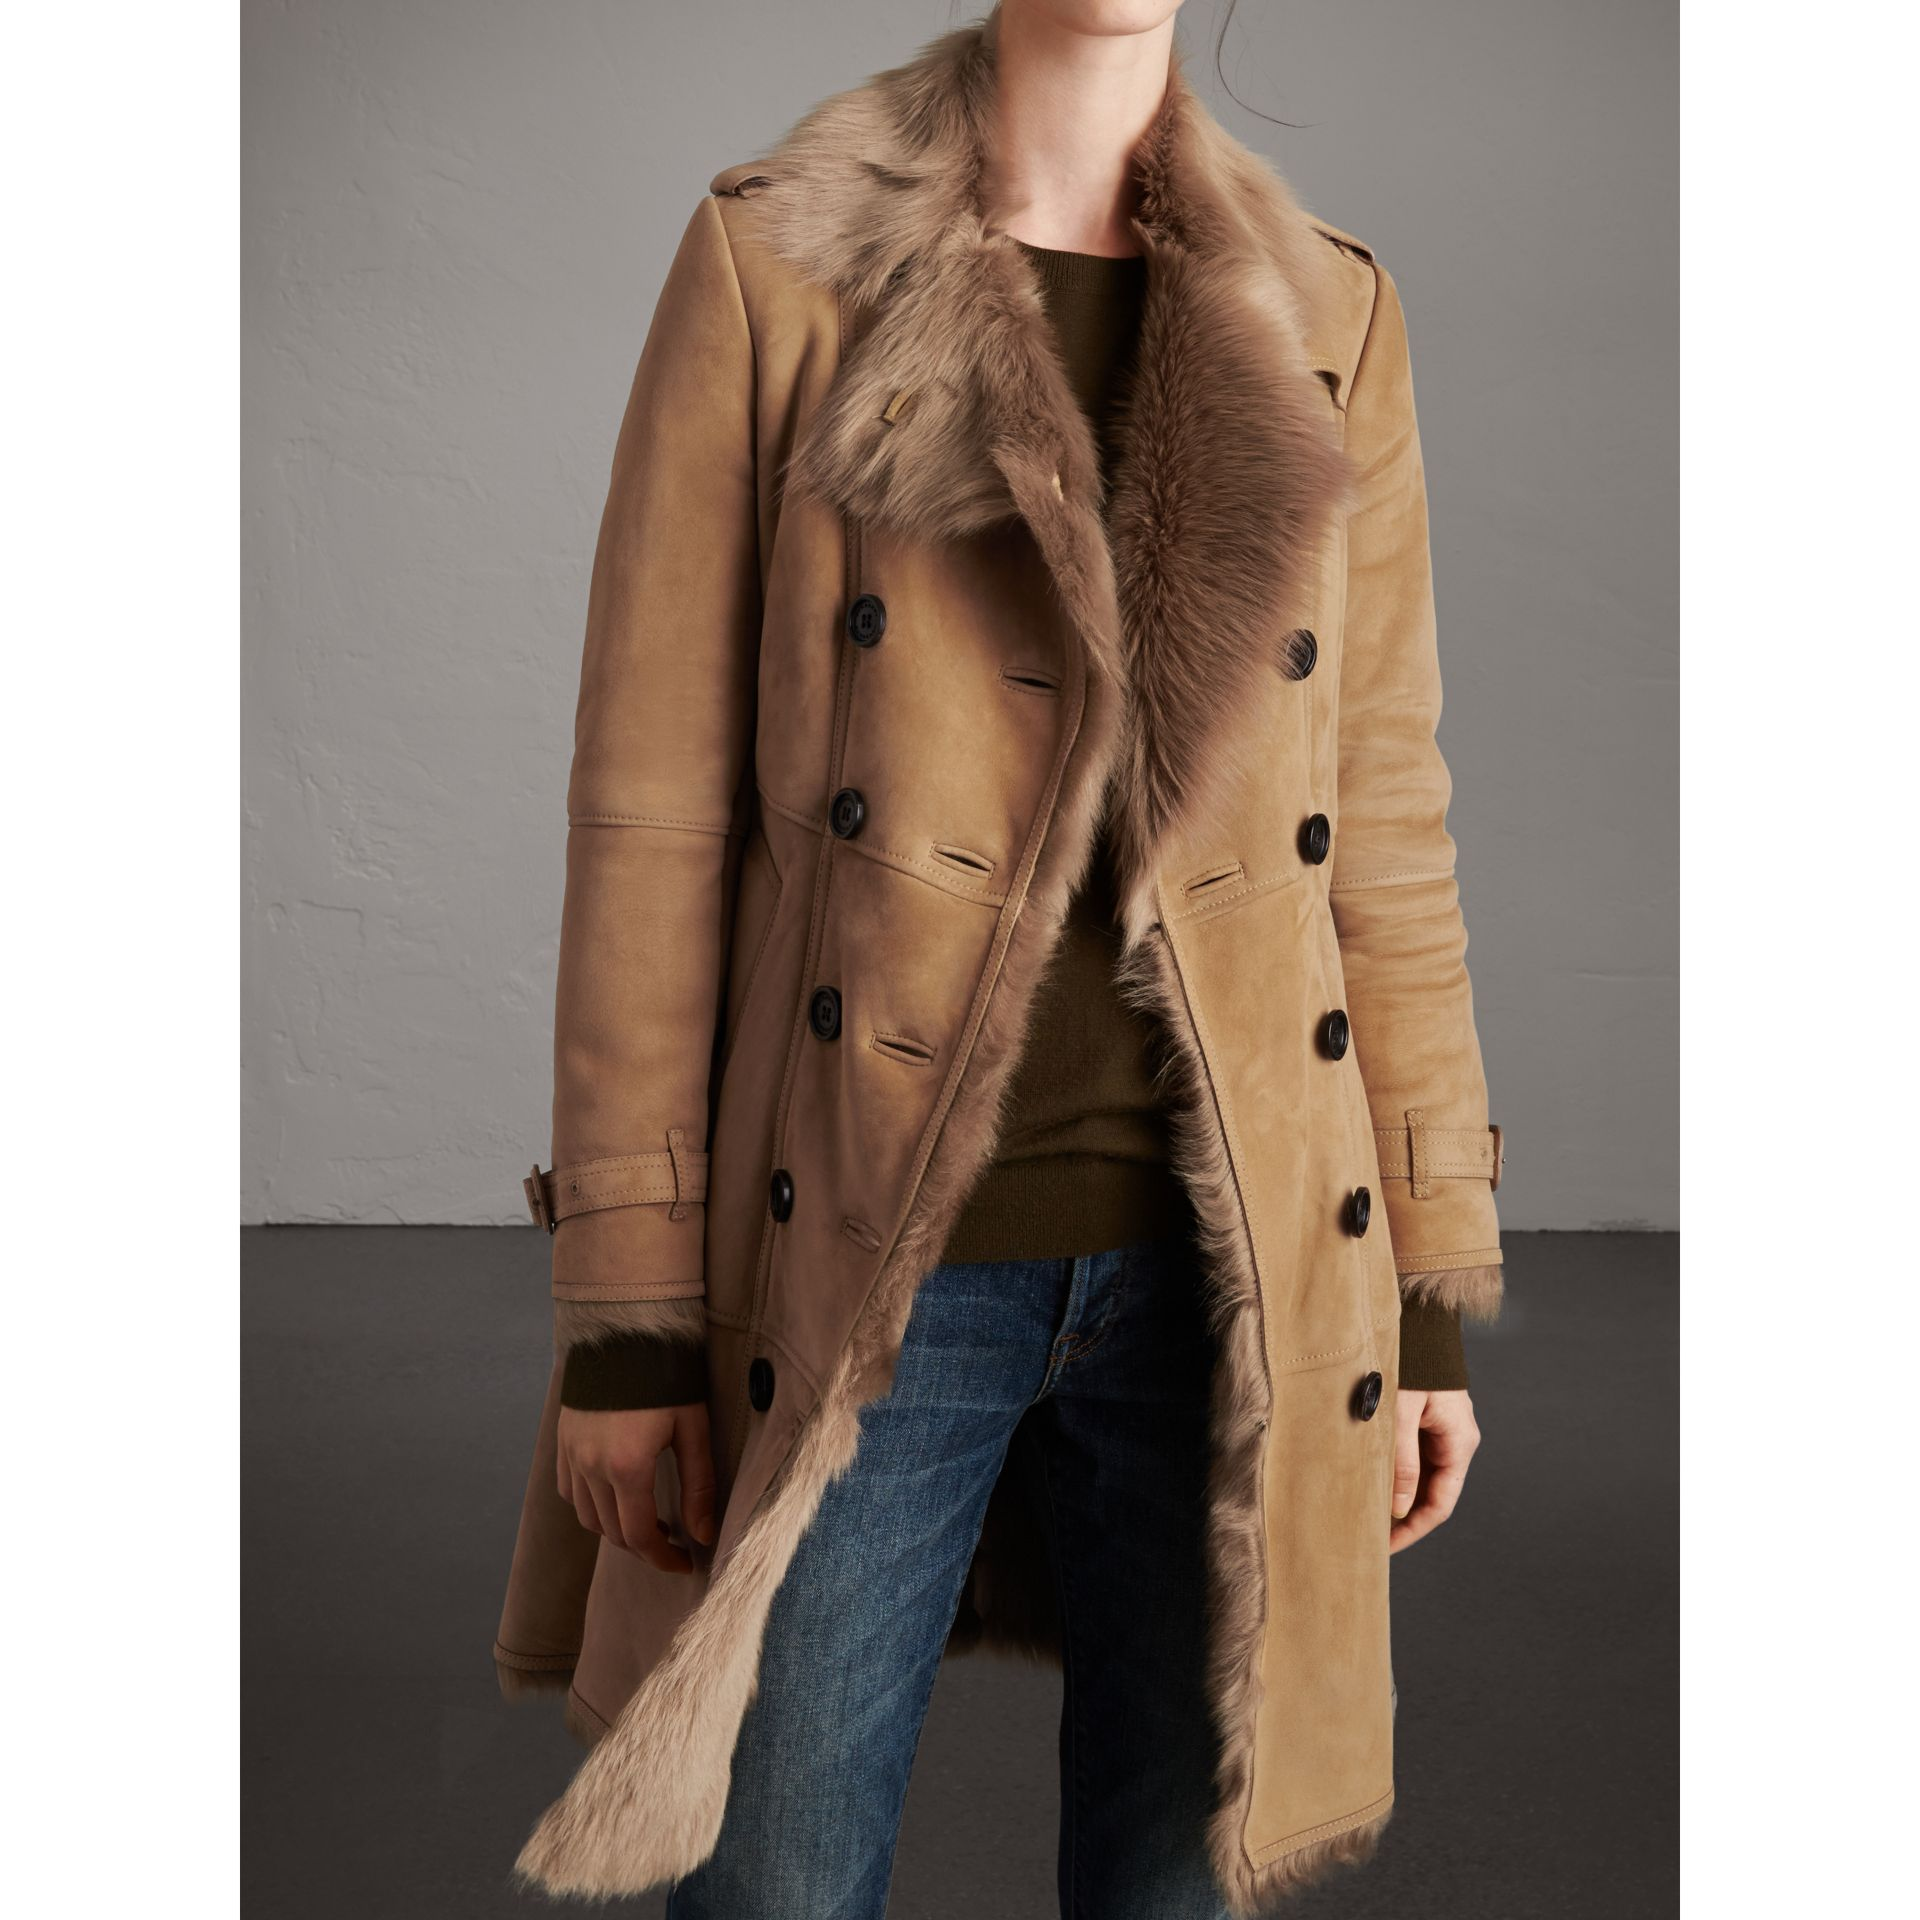 Shearling Trench Coat in Camel - Women | Burberry Australia - gallery image 5